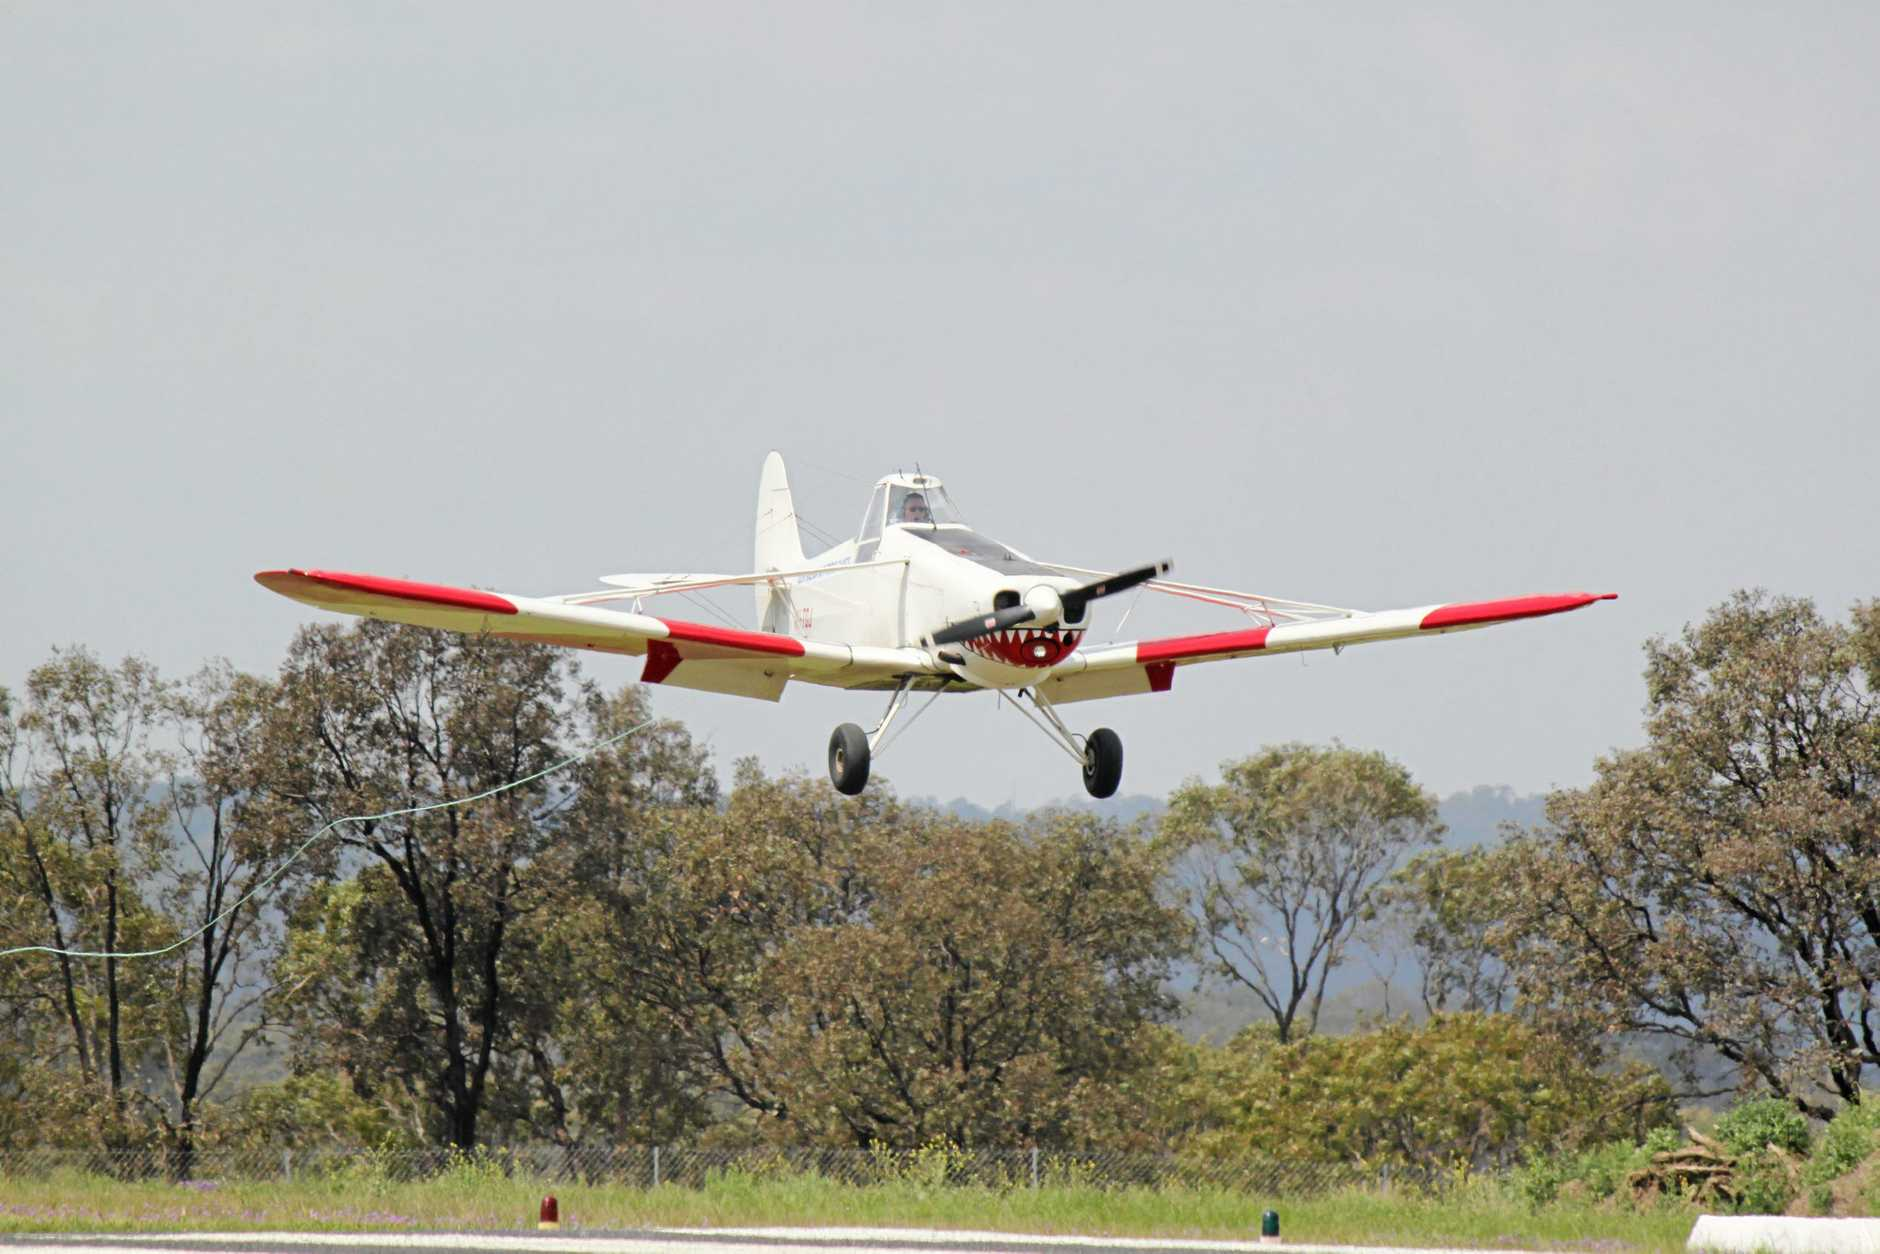 Warwick glides say having to share the airways with trainee pilots would not deter them from their hobby.